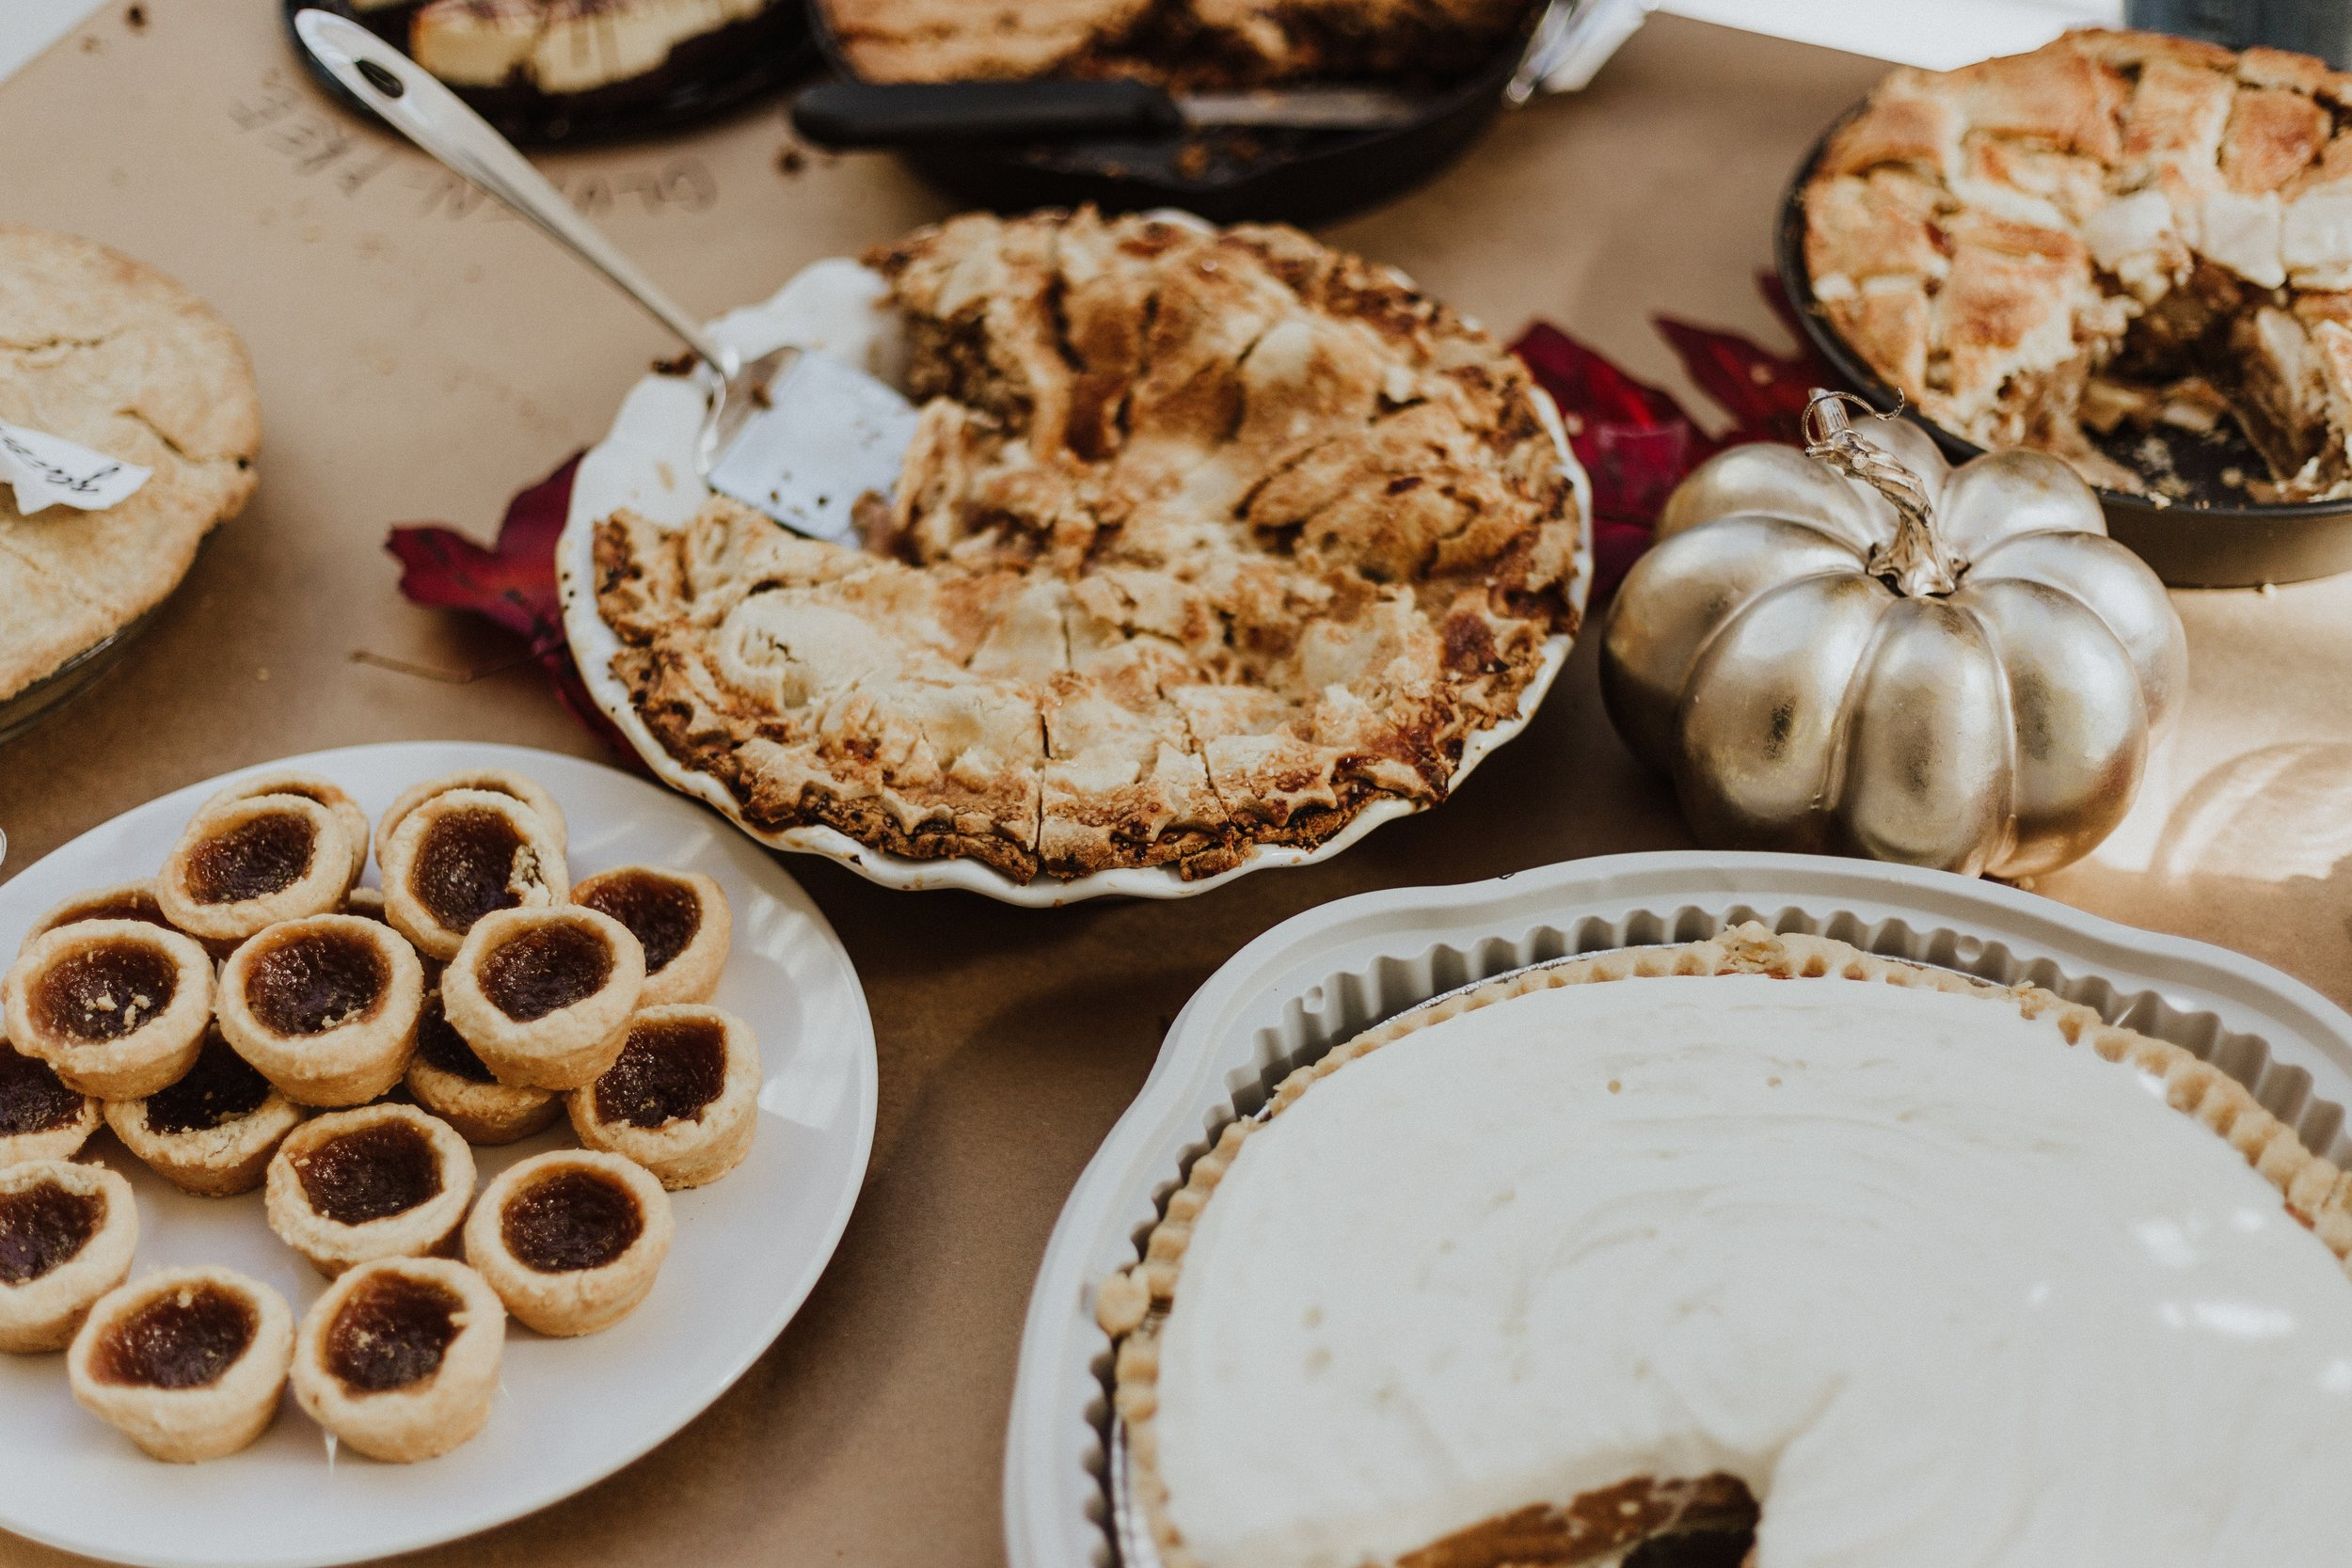 How to have a zero waste thanksgiving from www.goingzerowaste.com #zerowaste #thanksgiving #zerowastethanksgiving